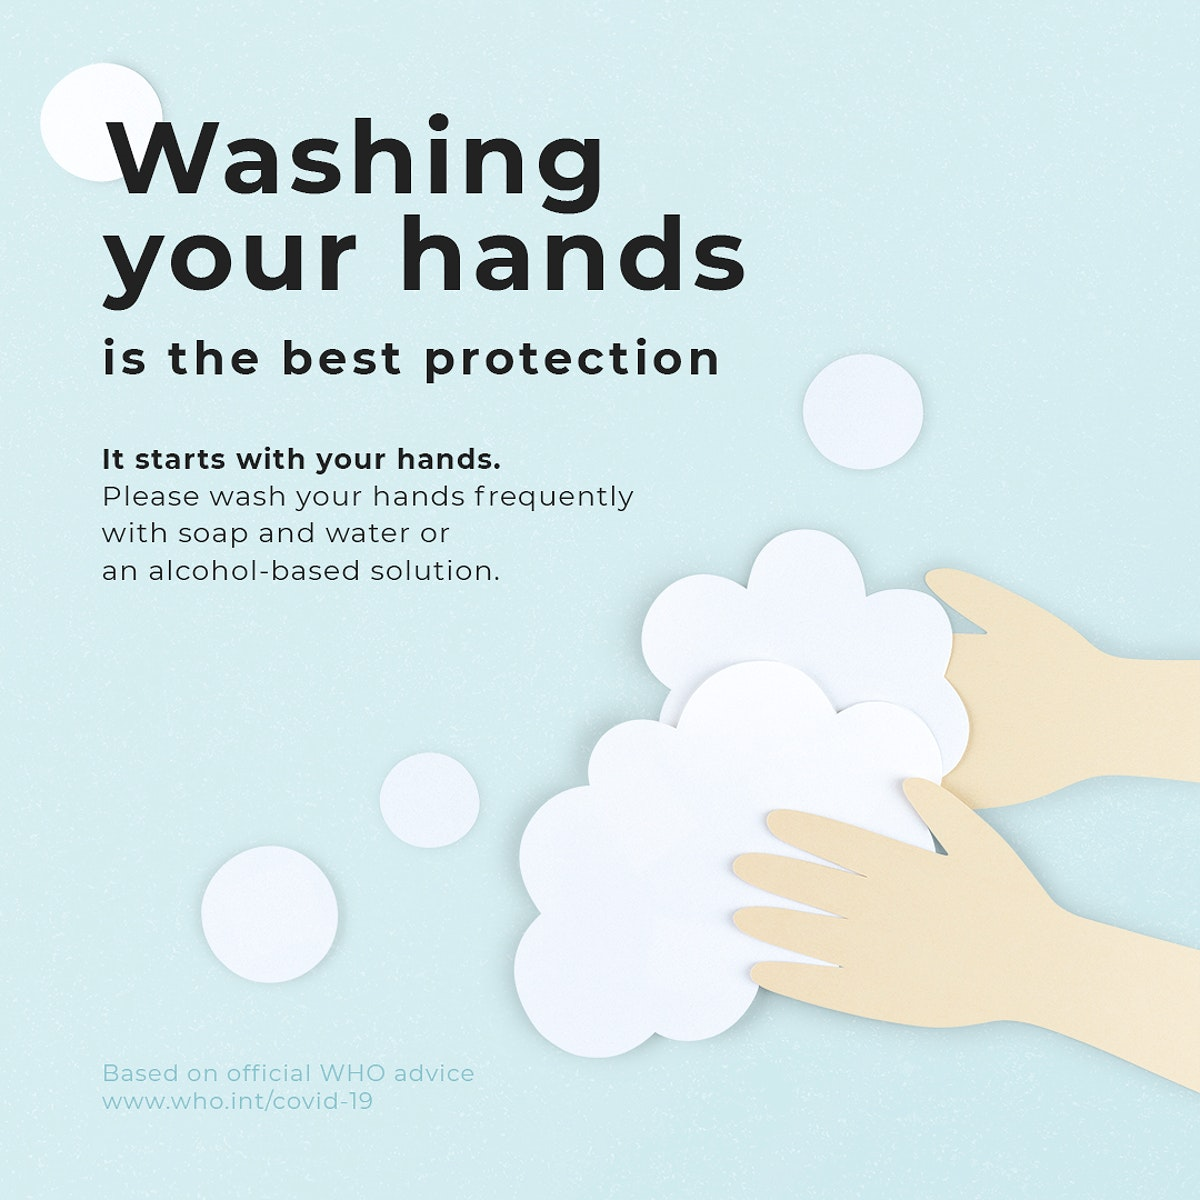 Washing your hands is the best protection social banner template mockup